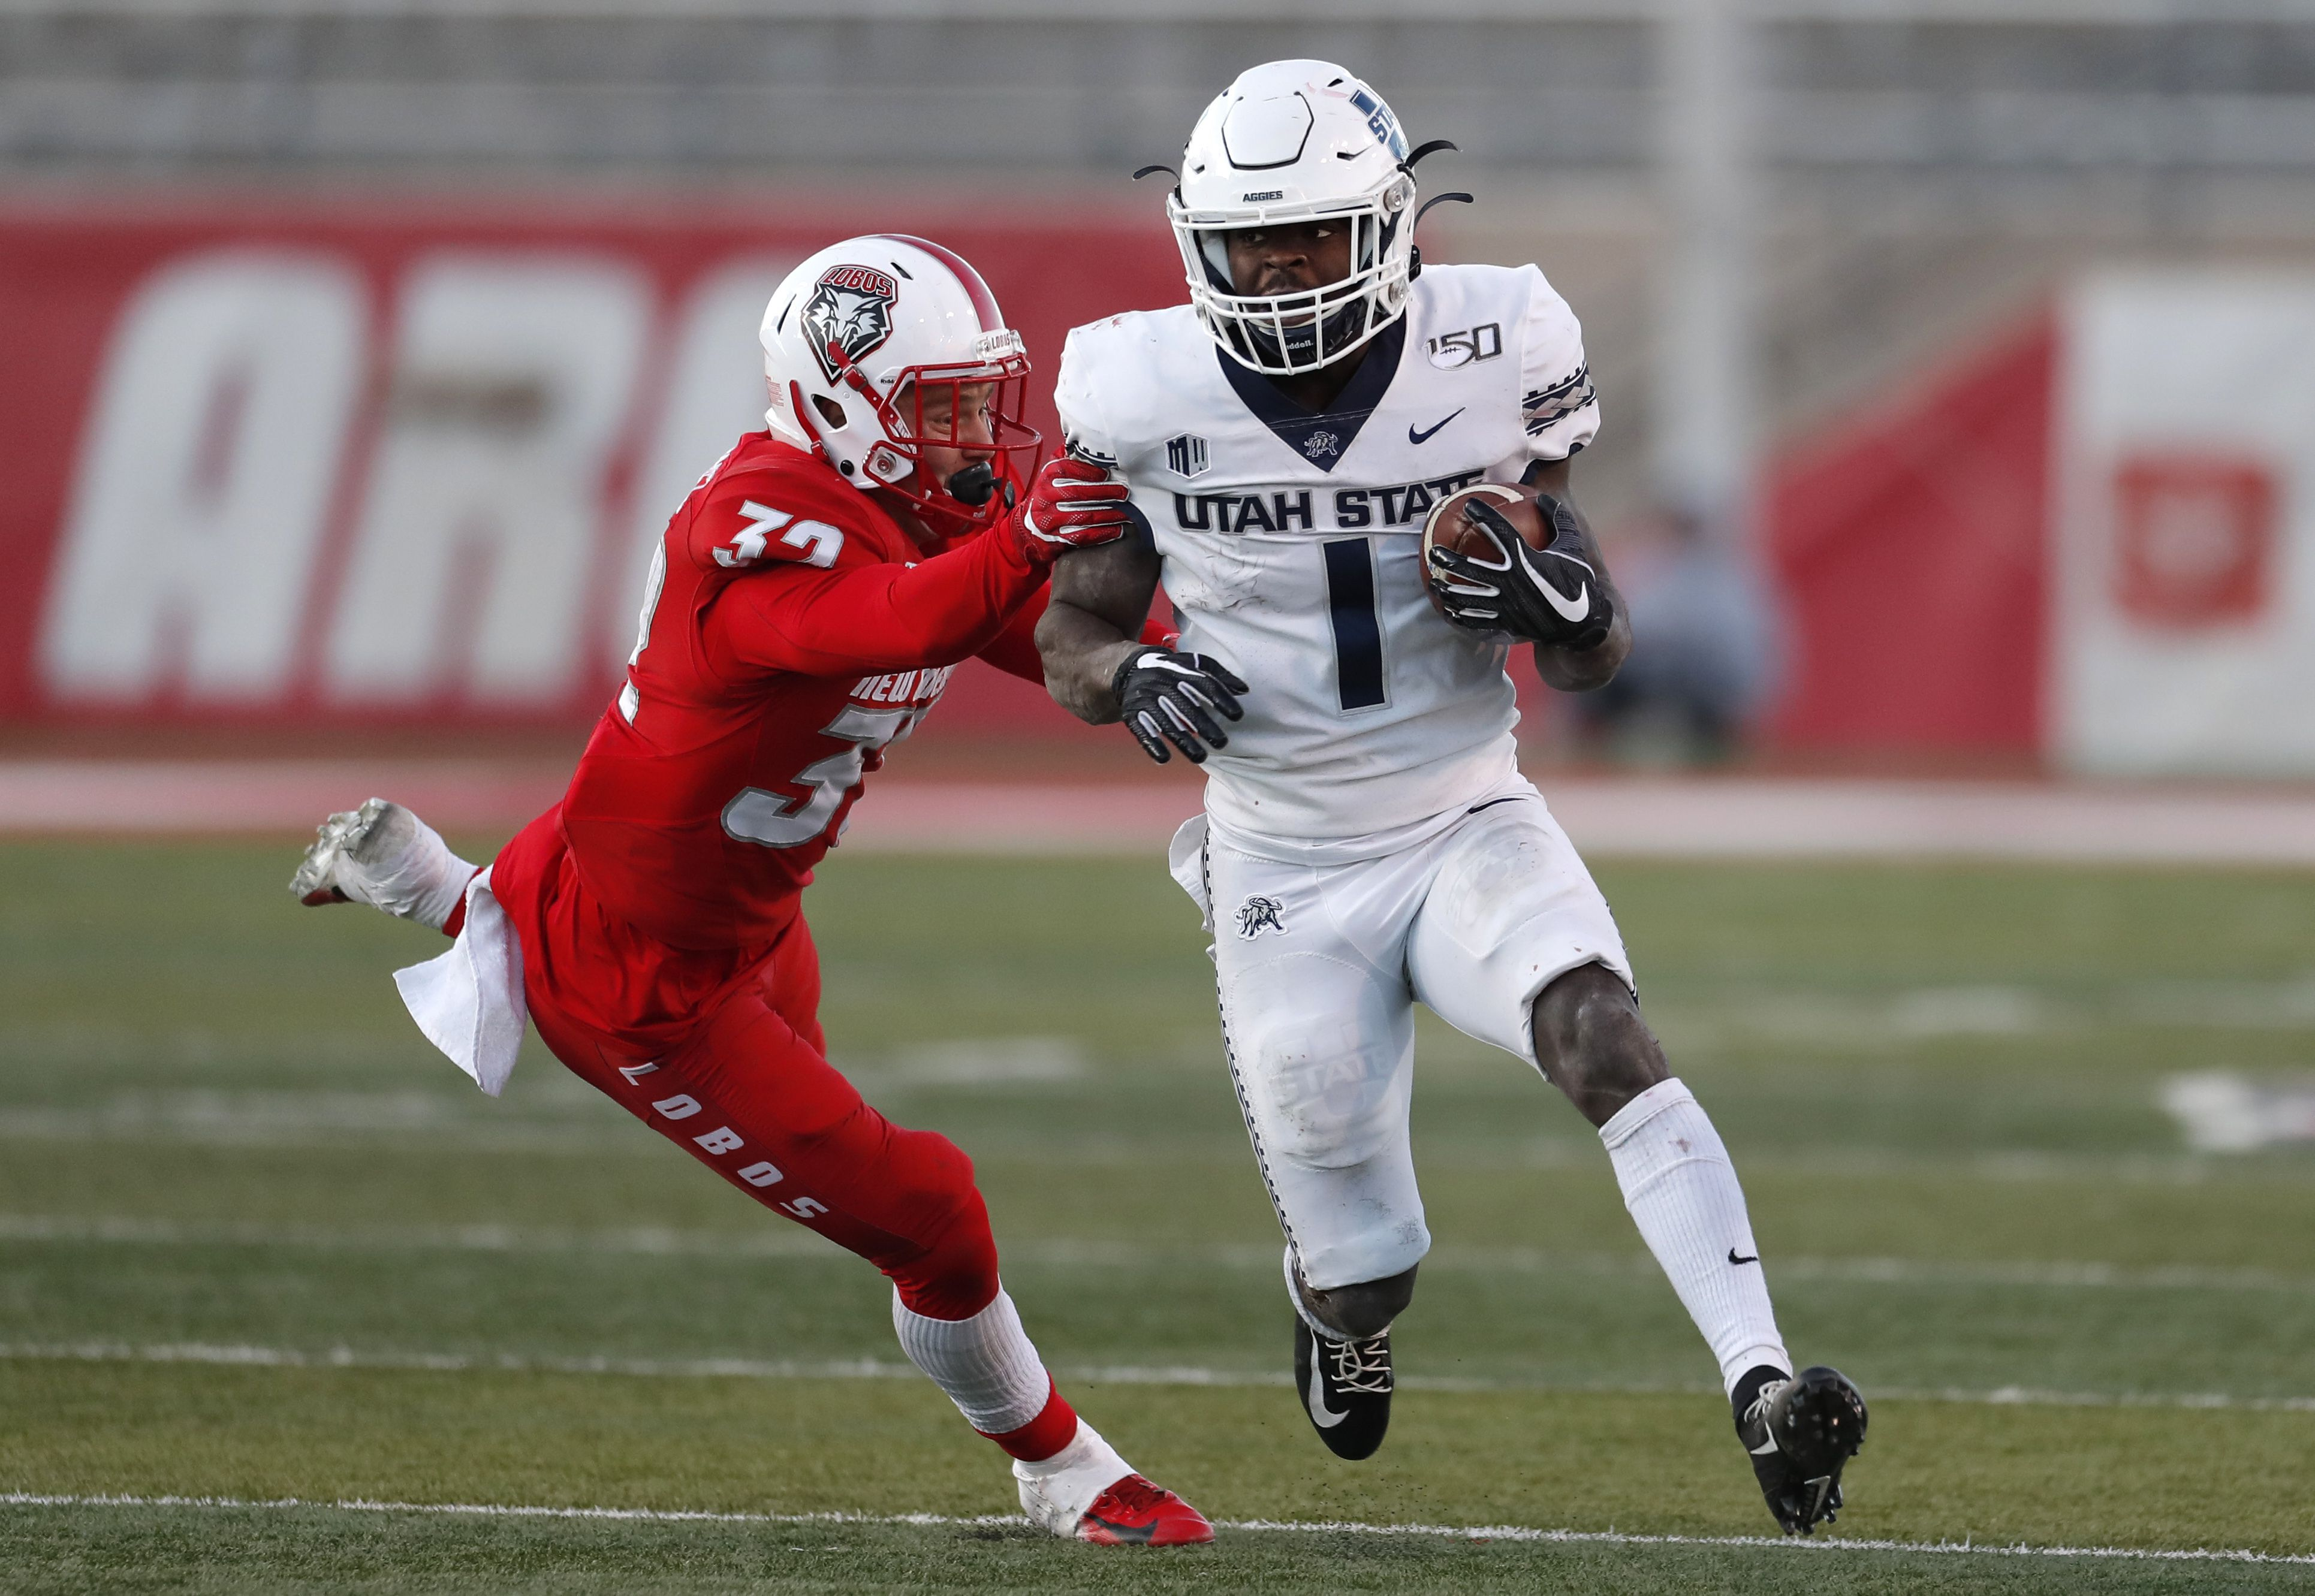 Usu Calendar 2022.Utah State Football Rounds Out 2022 2023 Non Conference Schedules